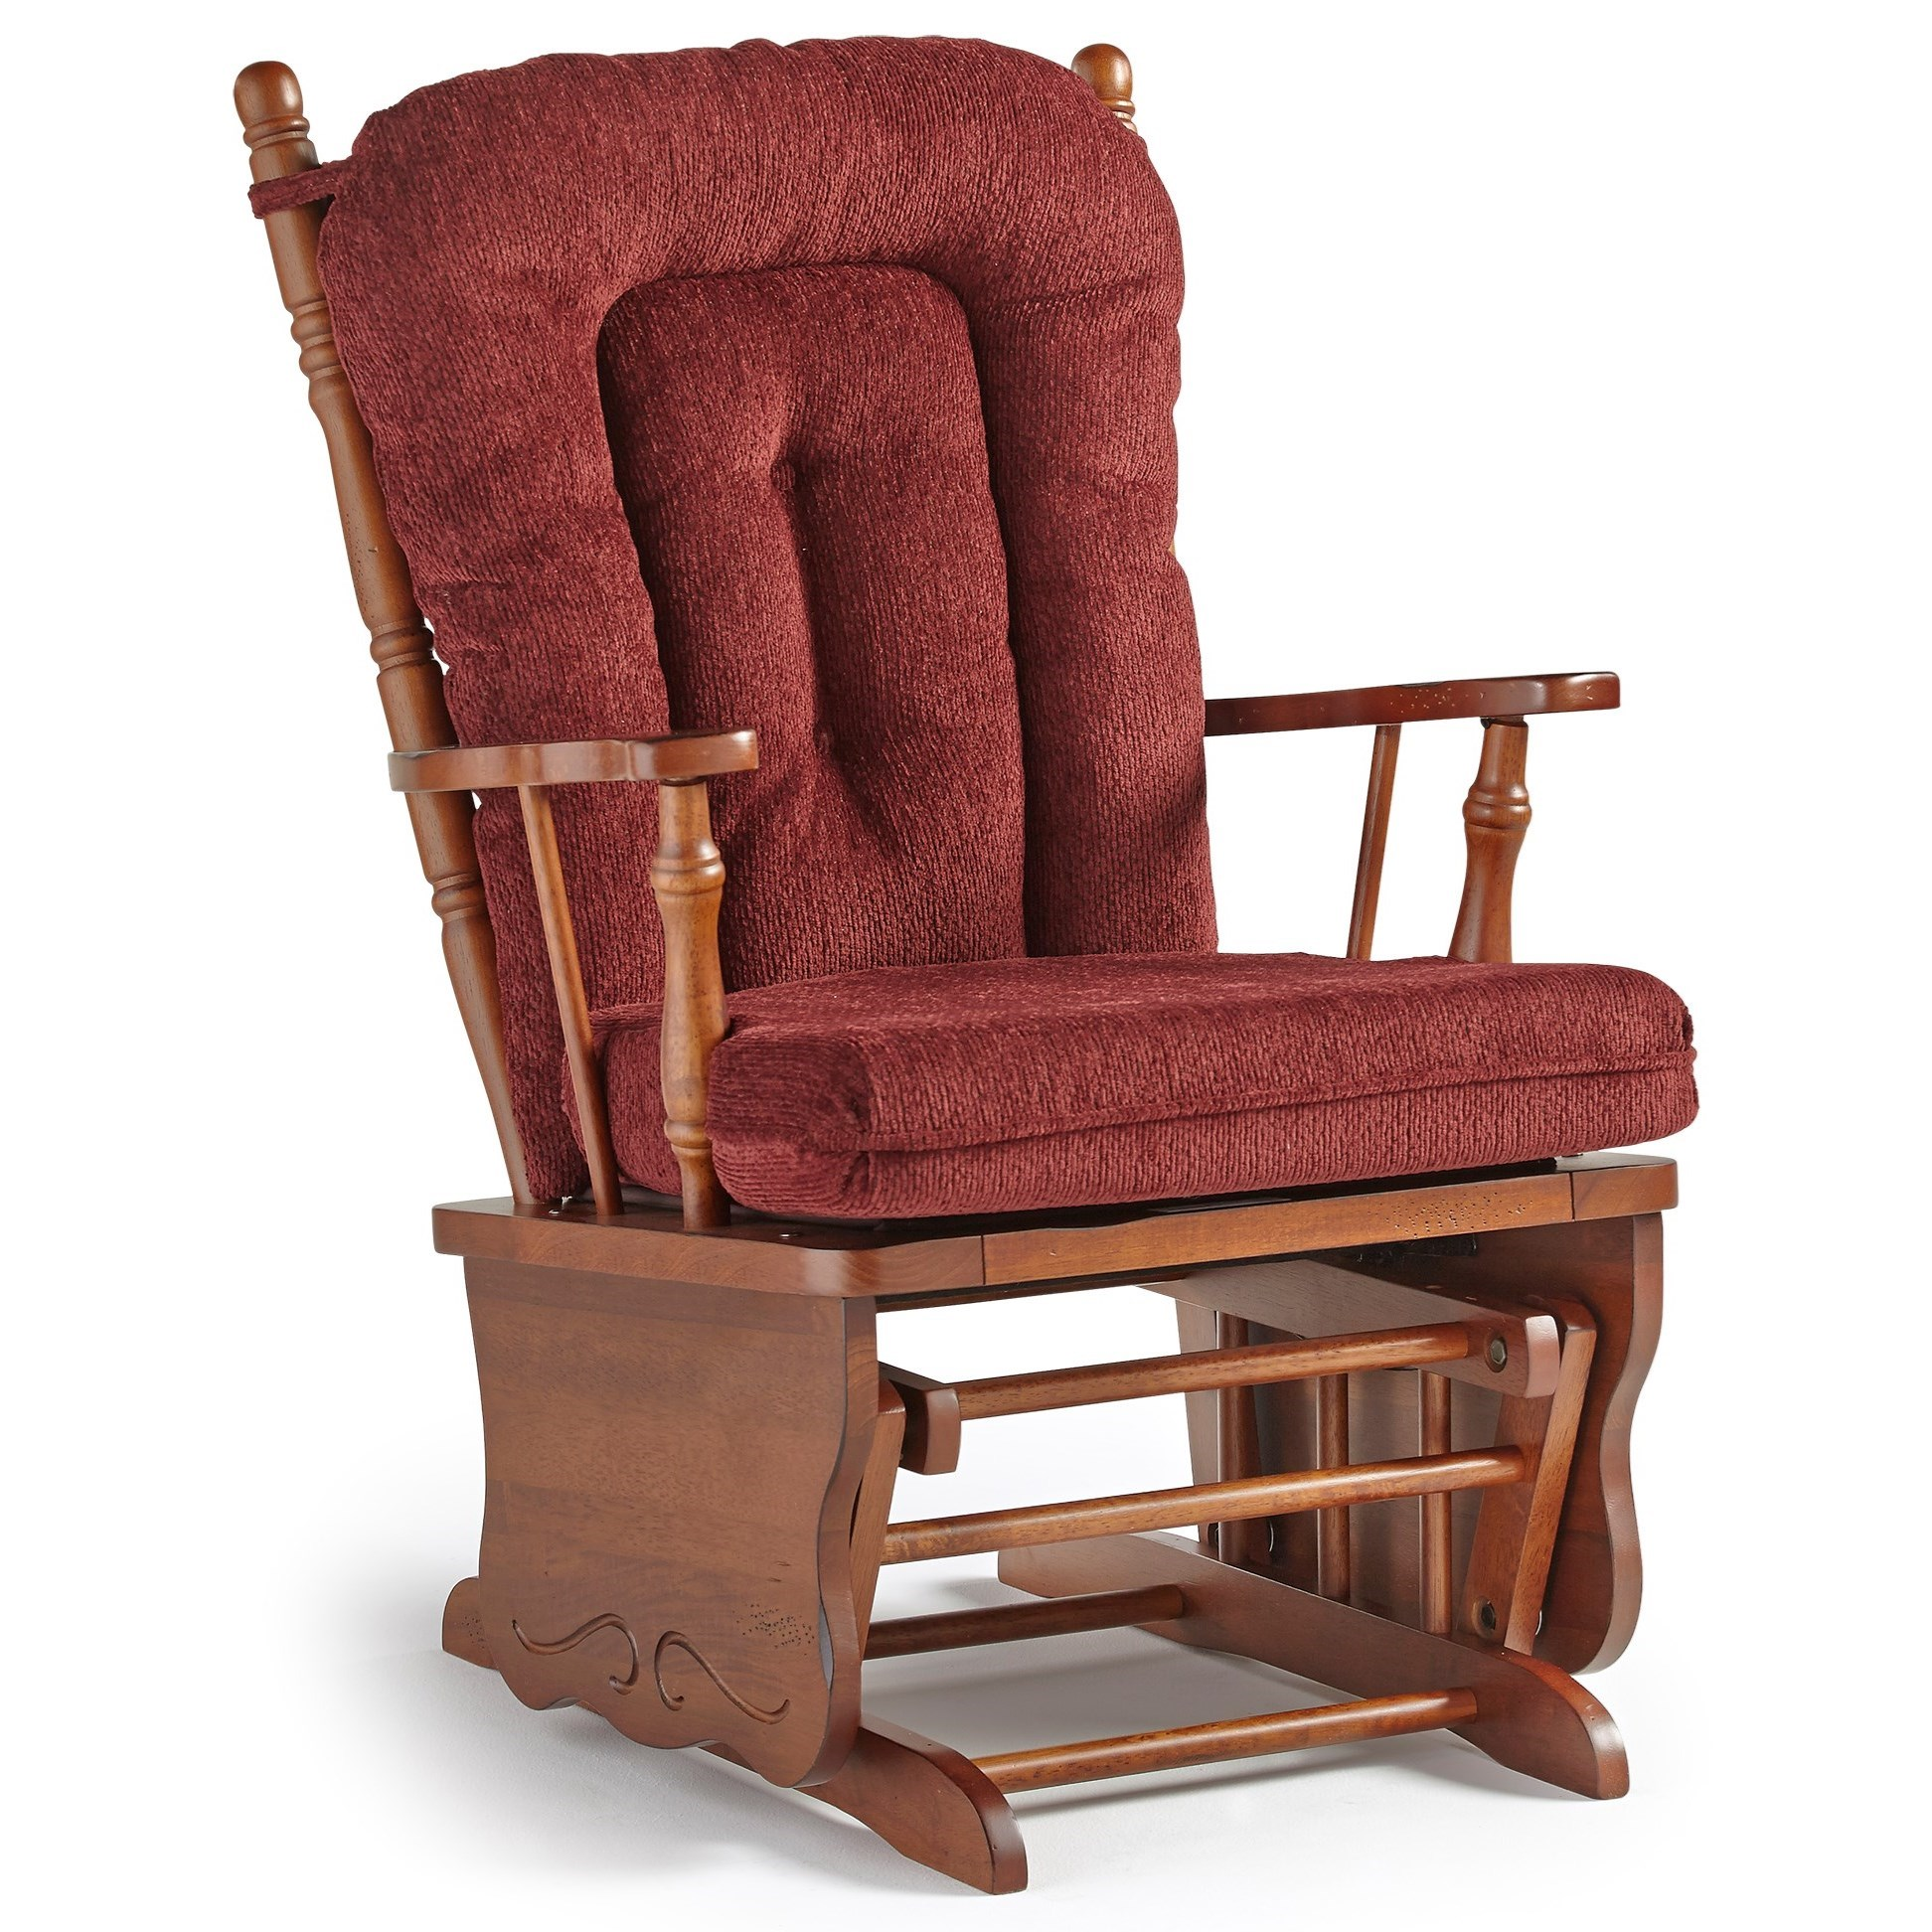 Glider Rockers Knox Glider Rocker by Best Home Furnishings at Baer's Furniture